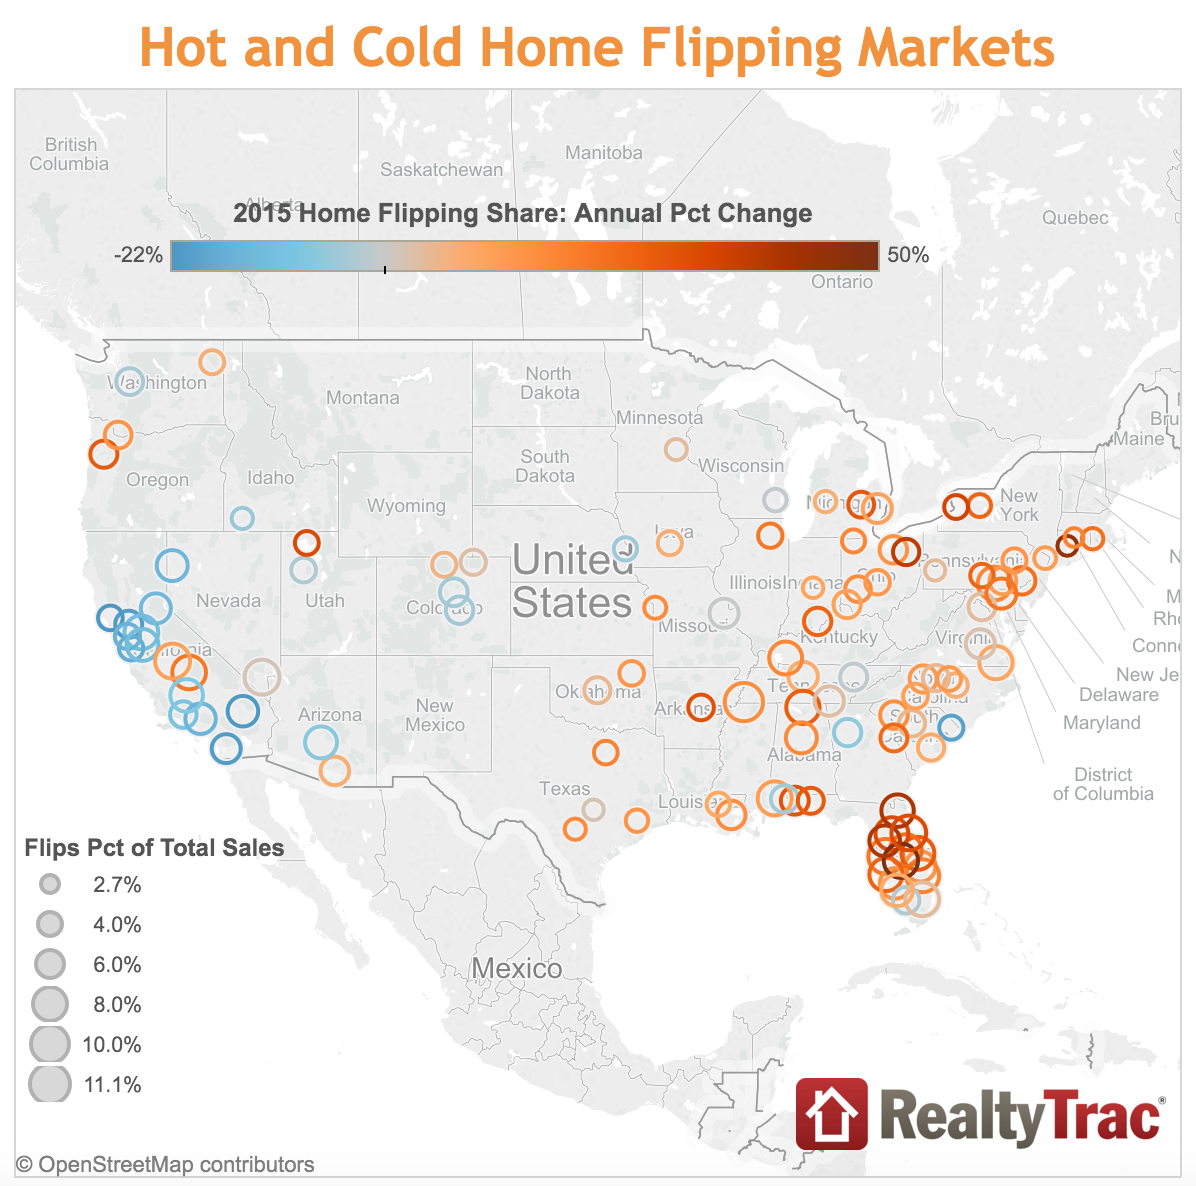 2015 Hot and Cold Home Flipping Markets